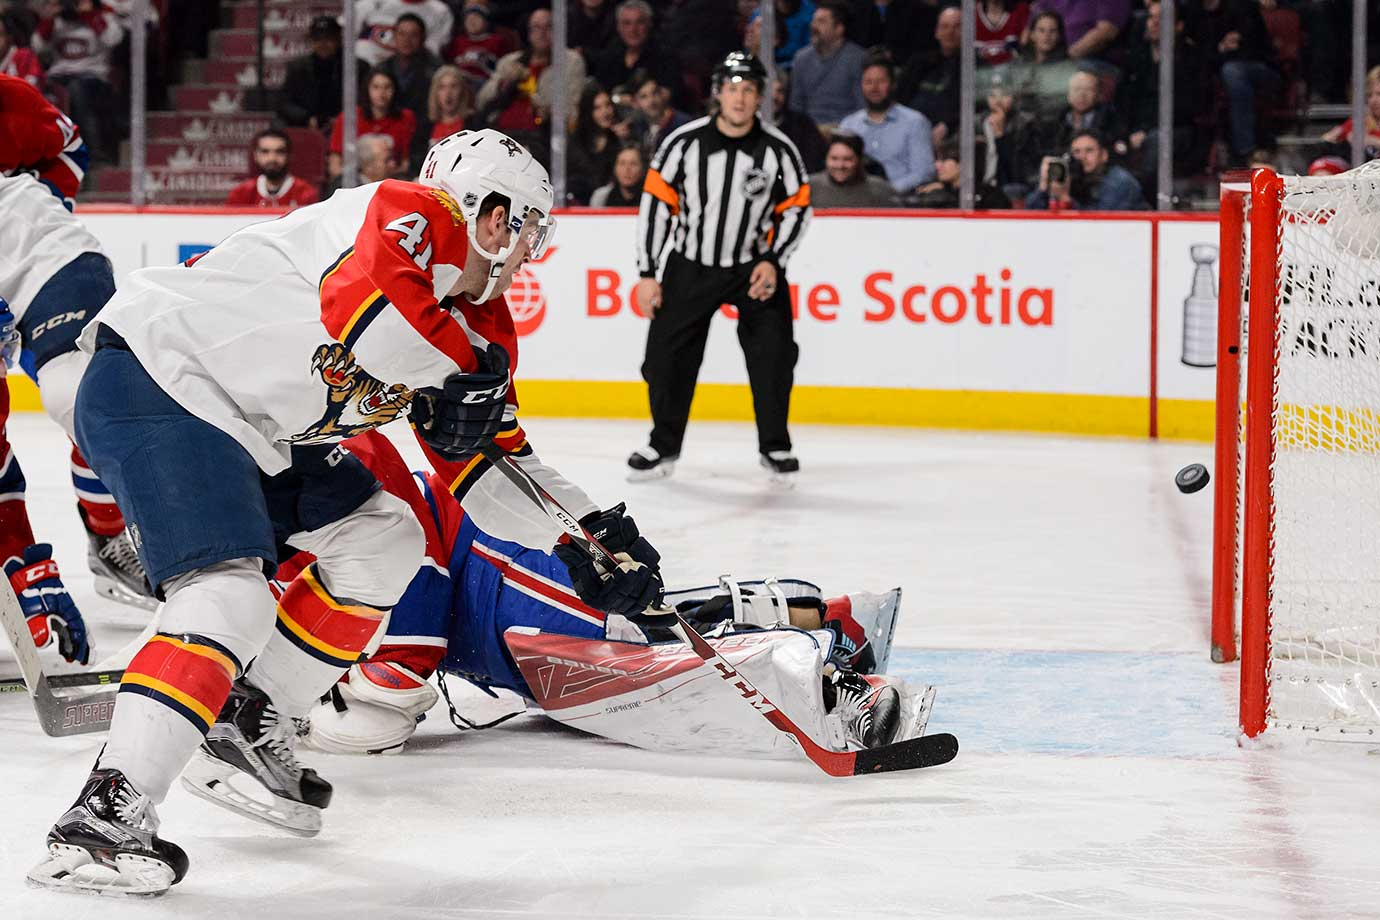 Gregg McKegg of the Florida Panthers scores against the Montreal Canadiens.